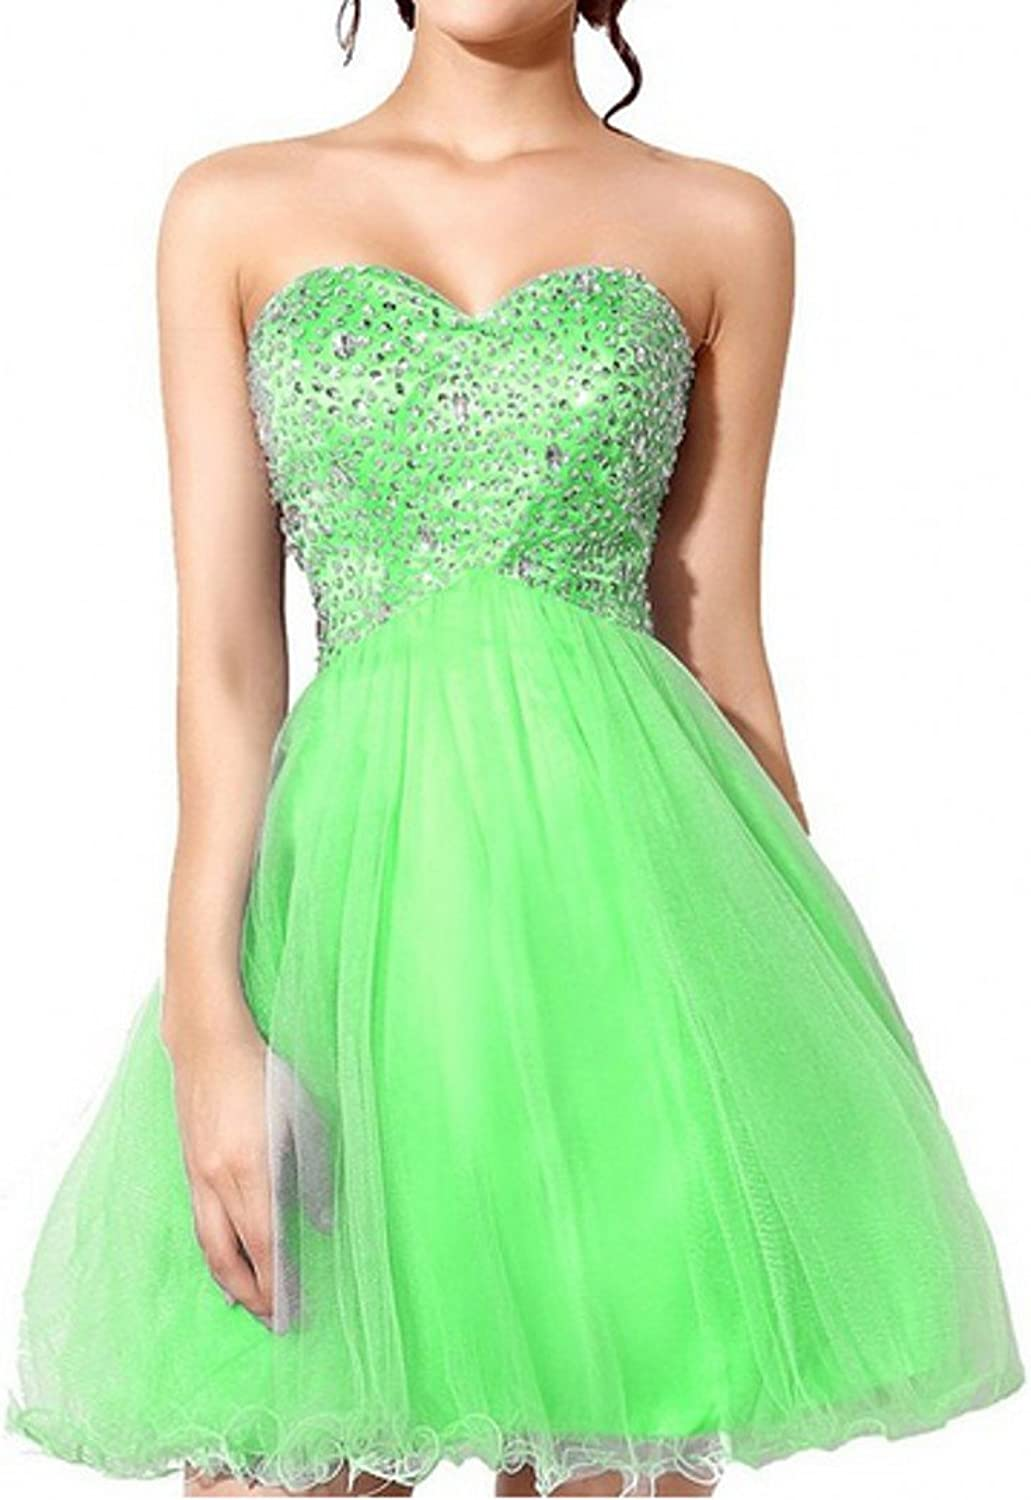 AK Beauty Women's Sweetheart Crystal Beading Short Prom Dresses